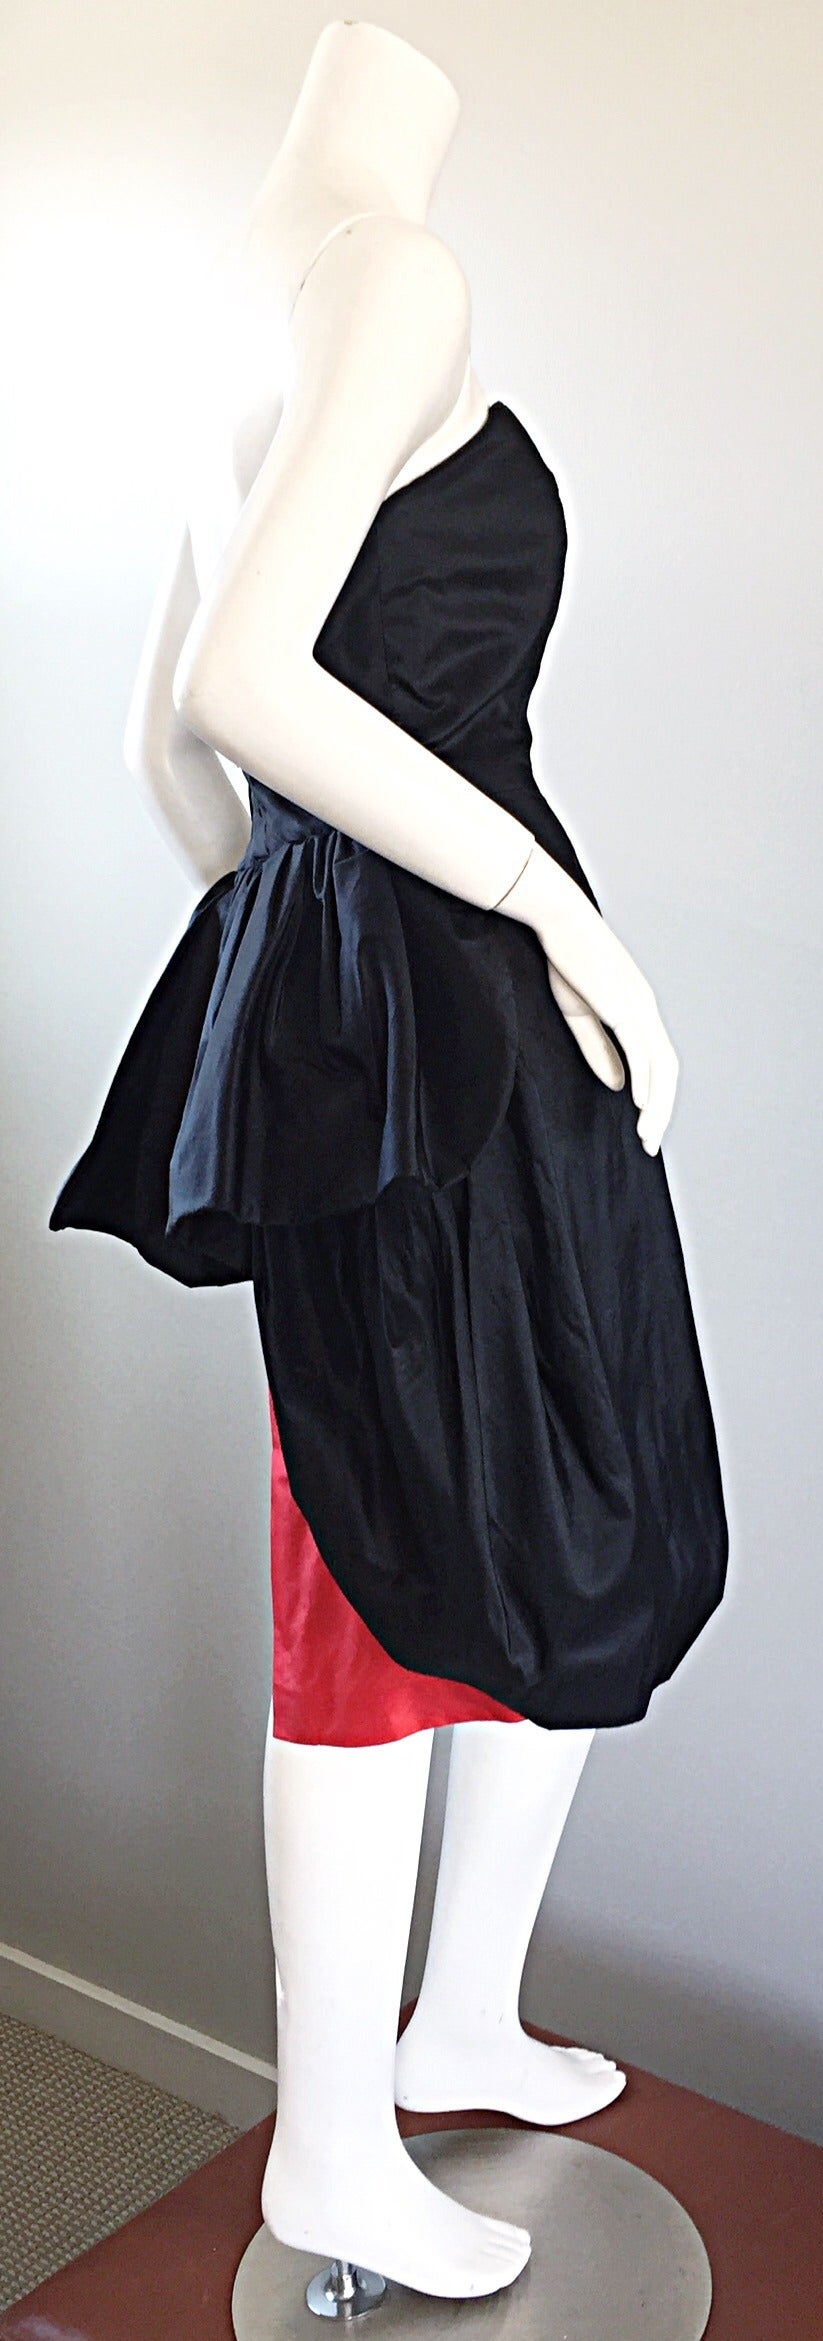 Rare Vintage Adam Beall Black + Red Strapless Silk ' Pouf ' Dress 3